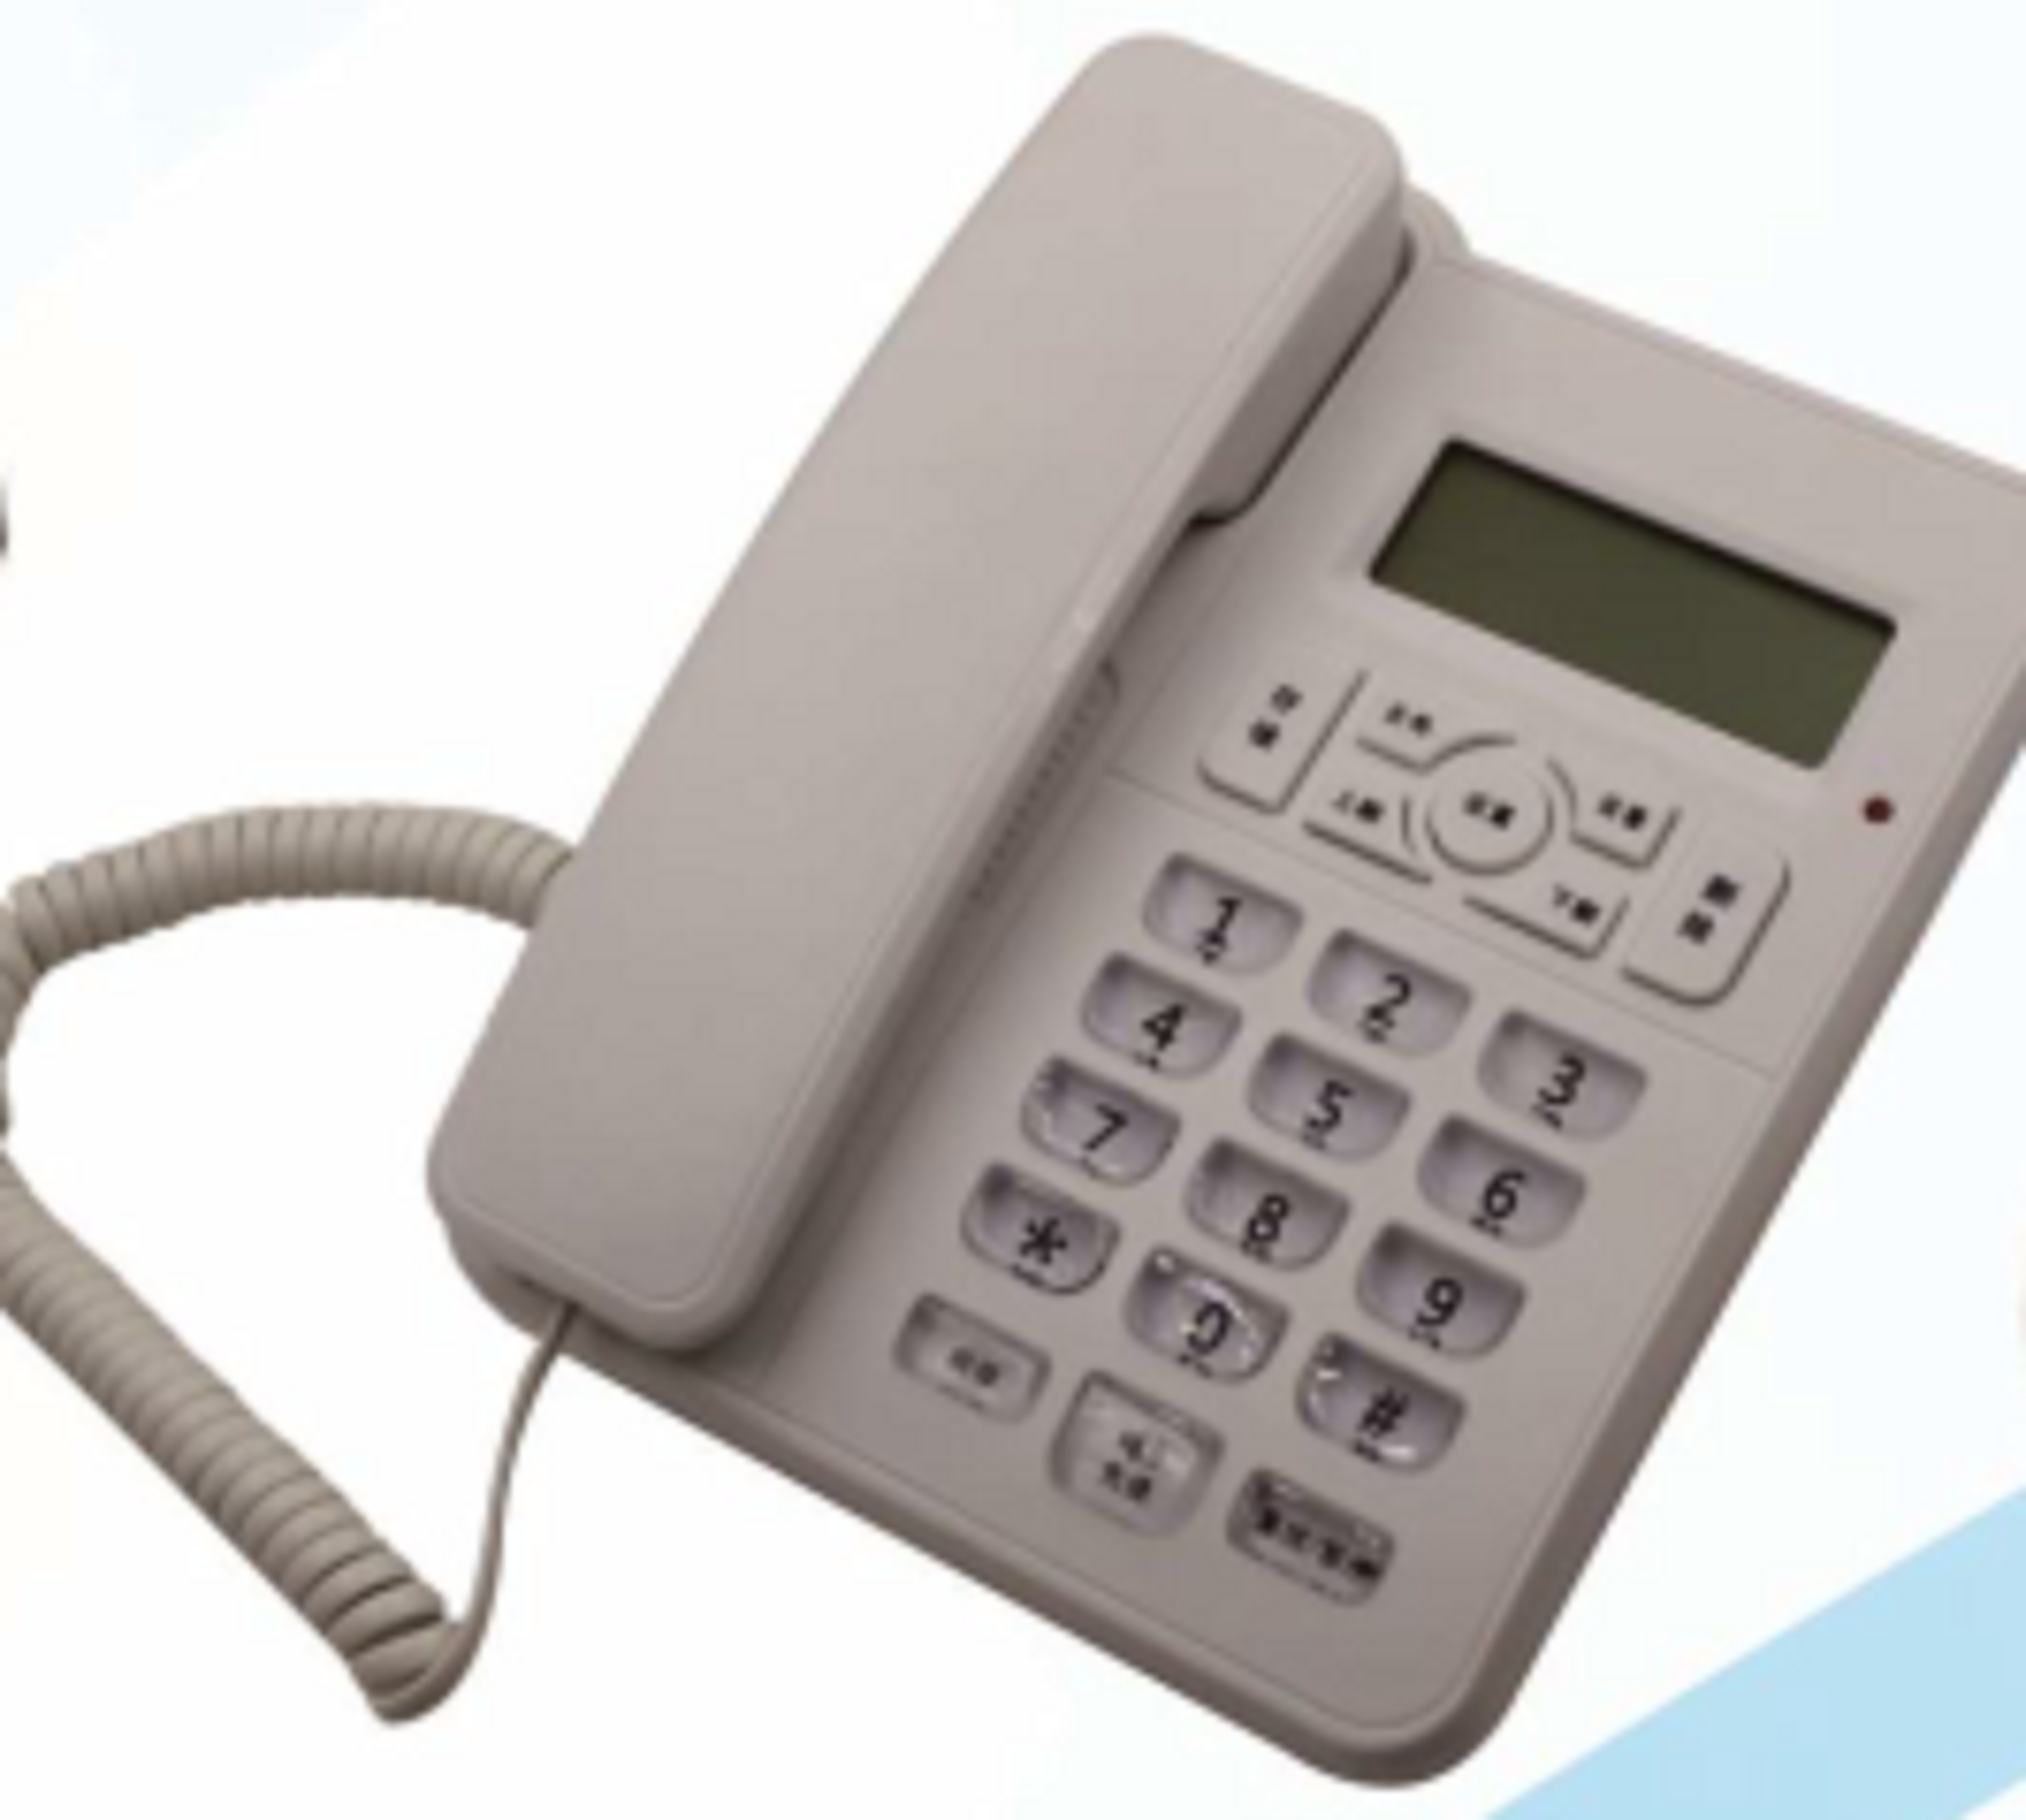 Hot Sale Caller ID Corded Telepon LCD Display Telepon Analog